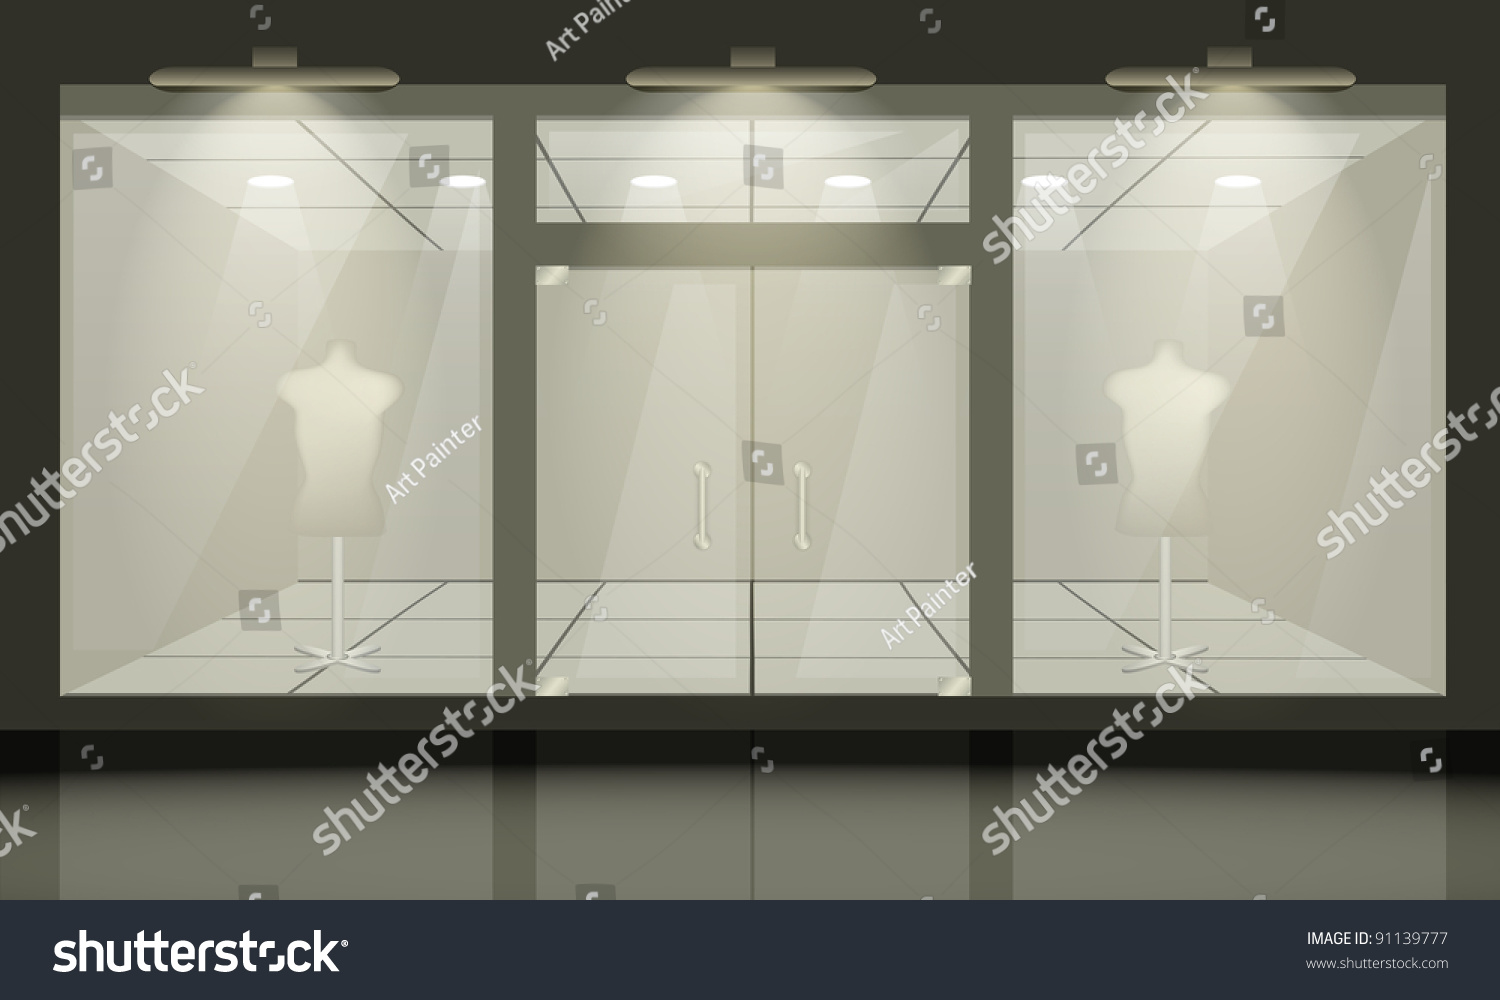 Shop Glass Windows Doors Front View Stock Vector 91139777